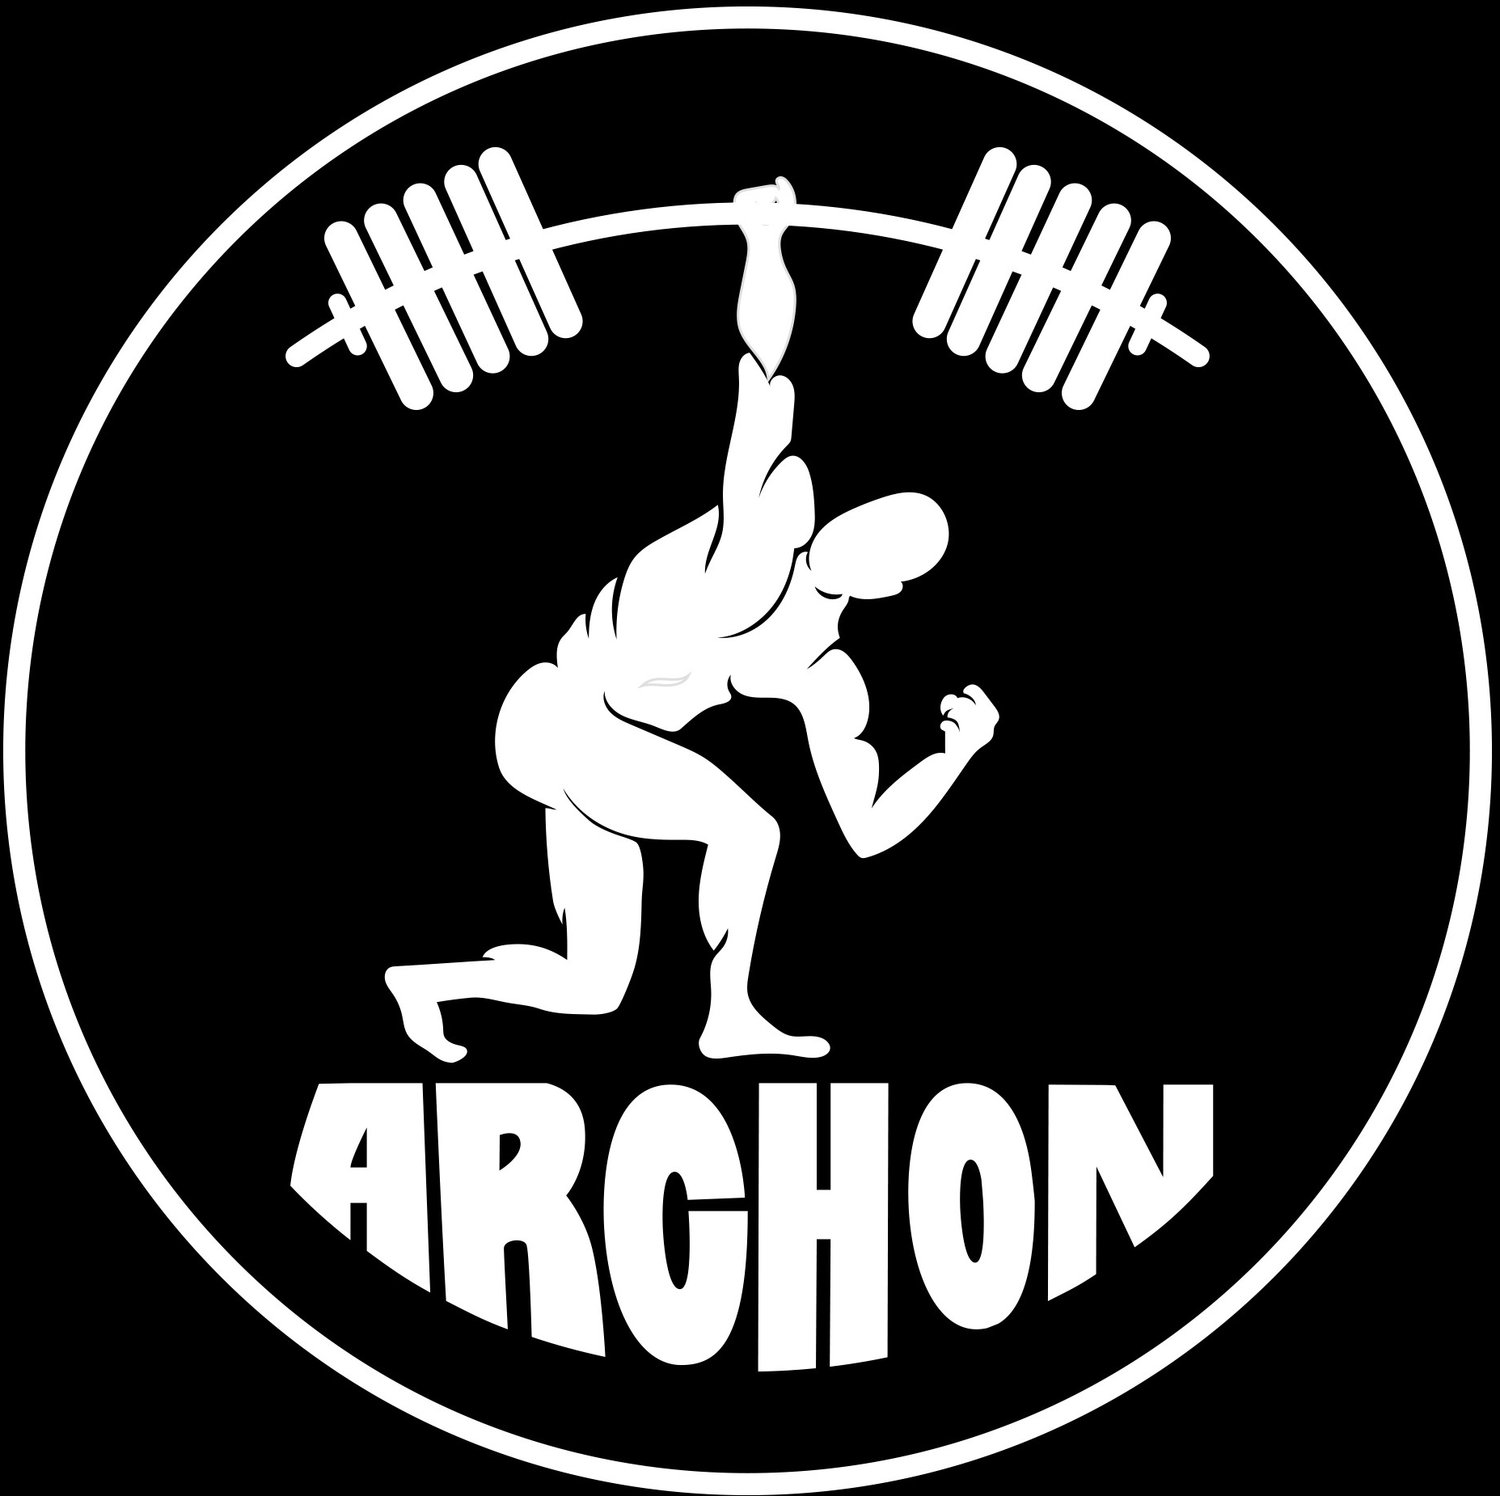 Crossfit Archon Your New Home For Crossfit In Dallas 1721 S